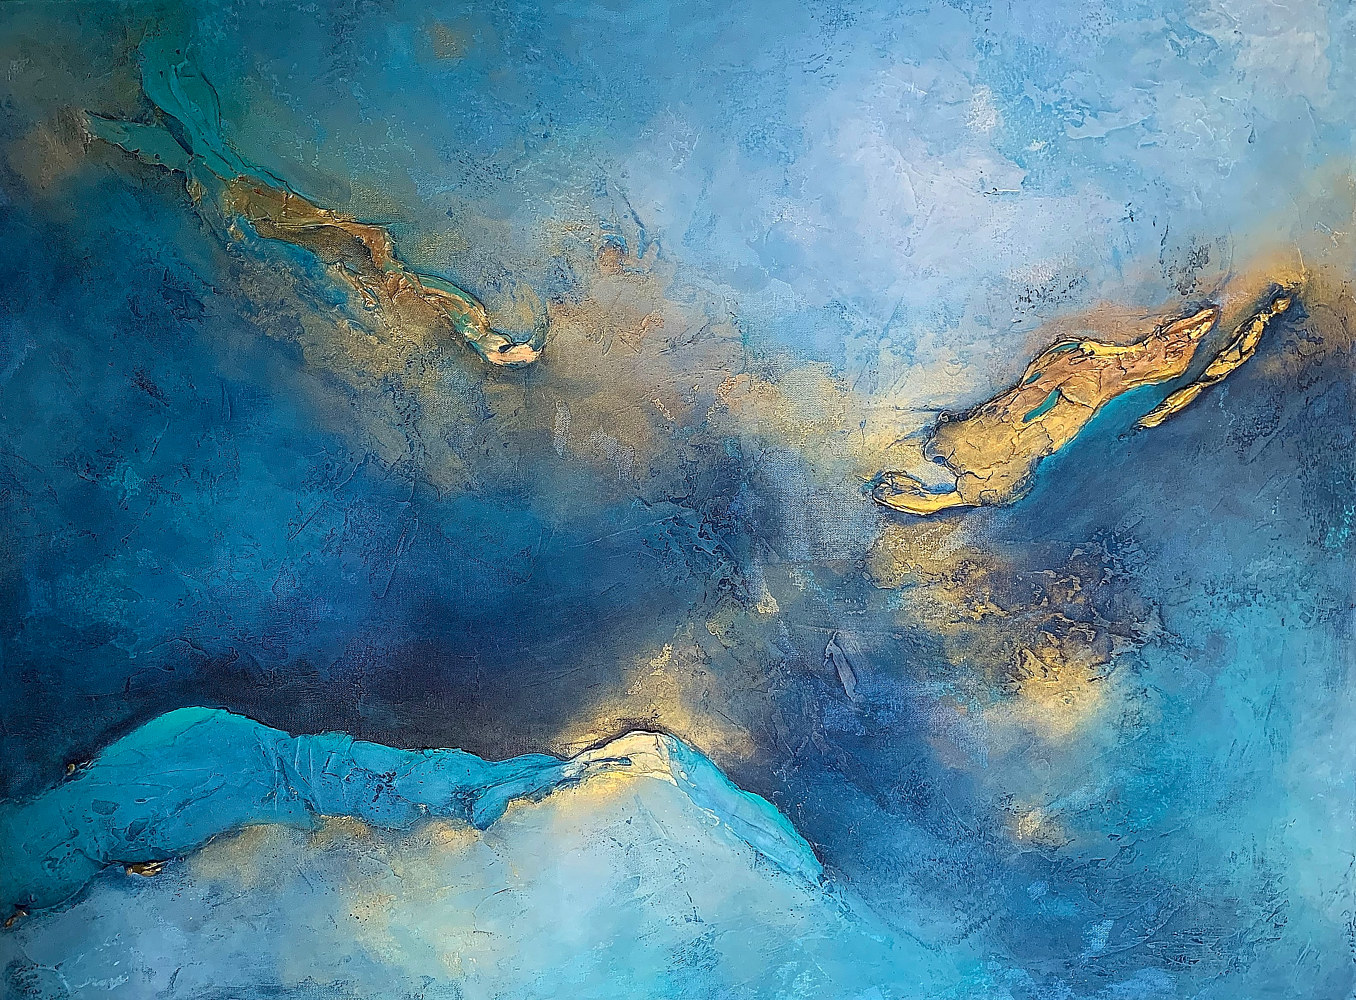 Acrylic painting Water's Edge by Ginger Thomas